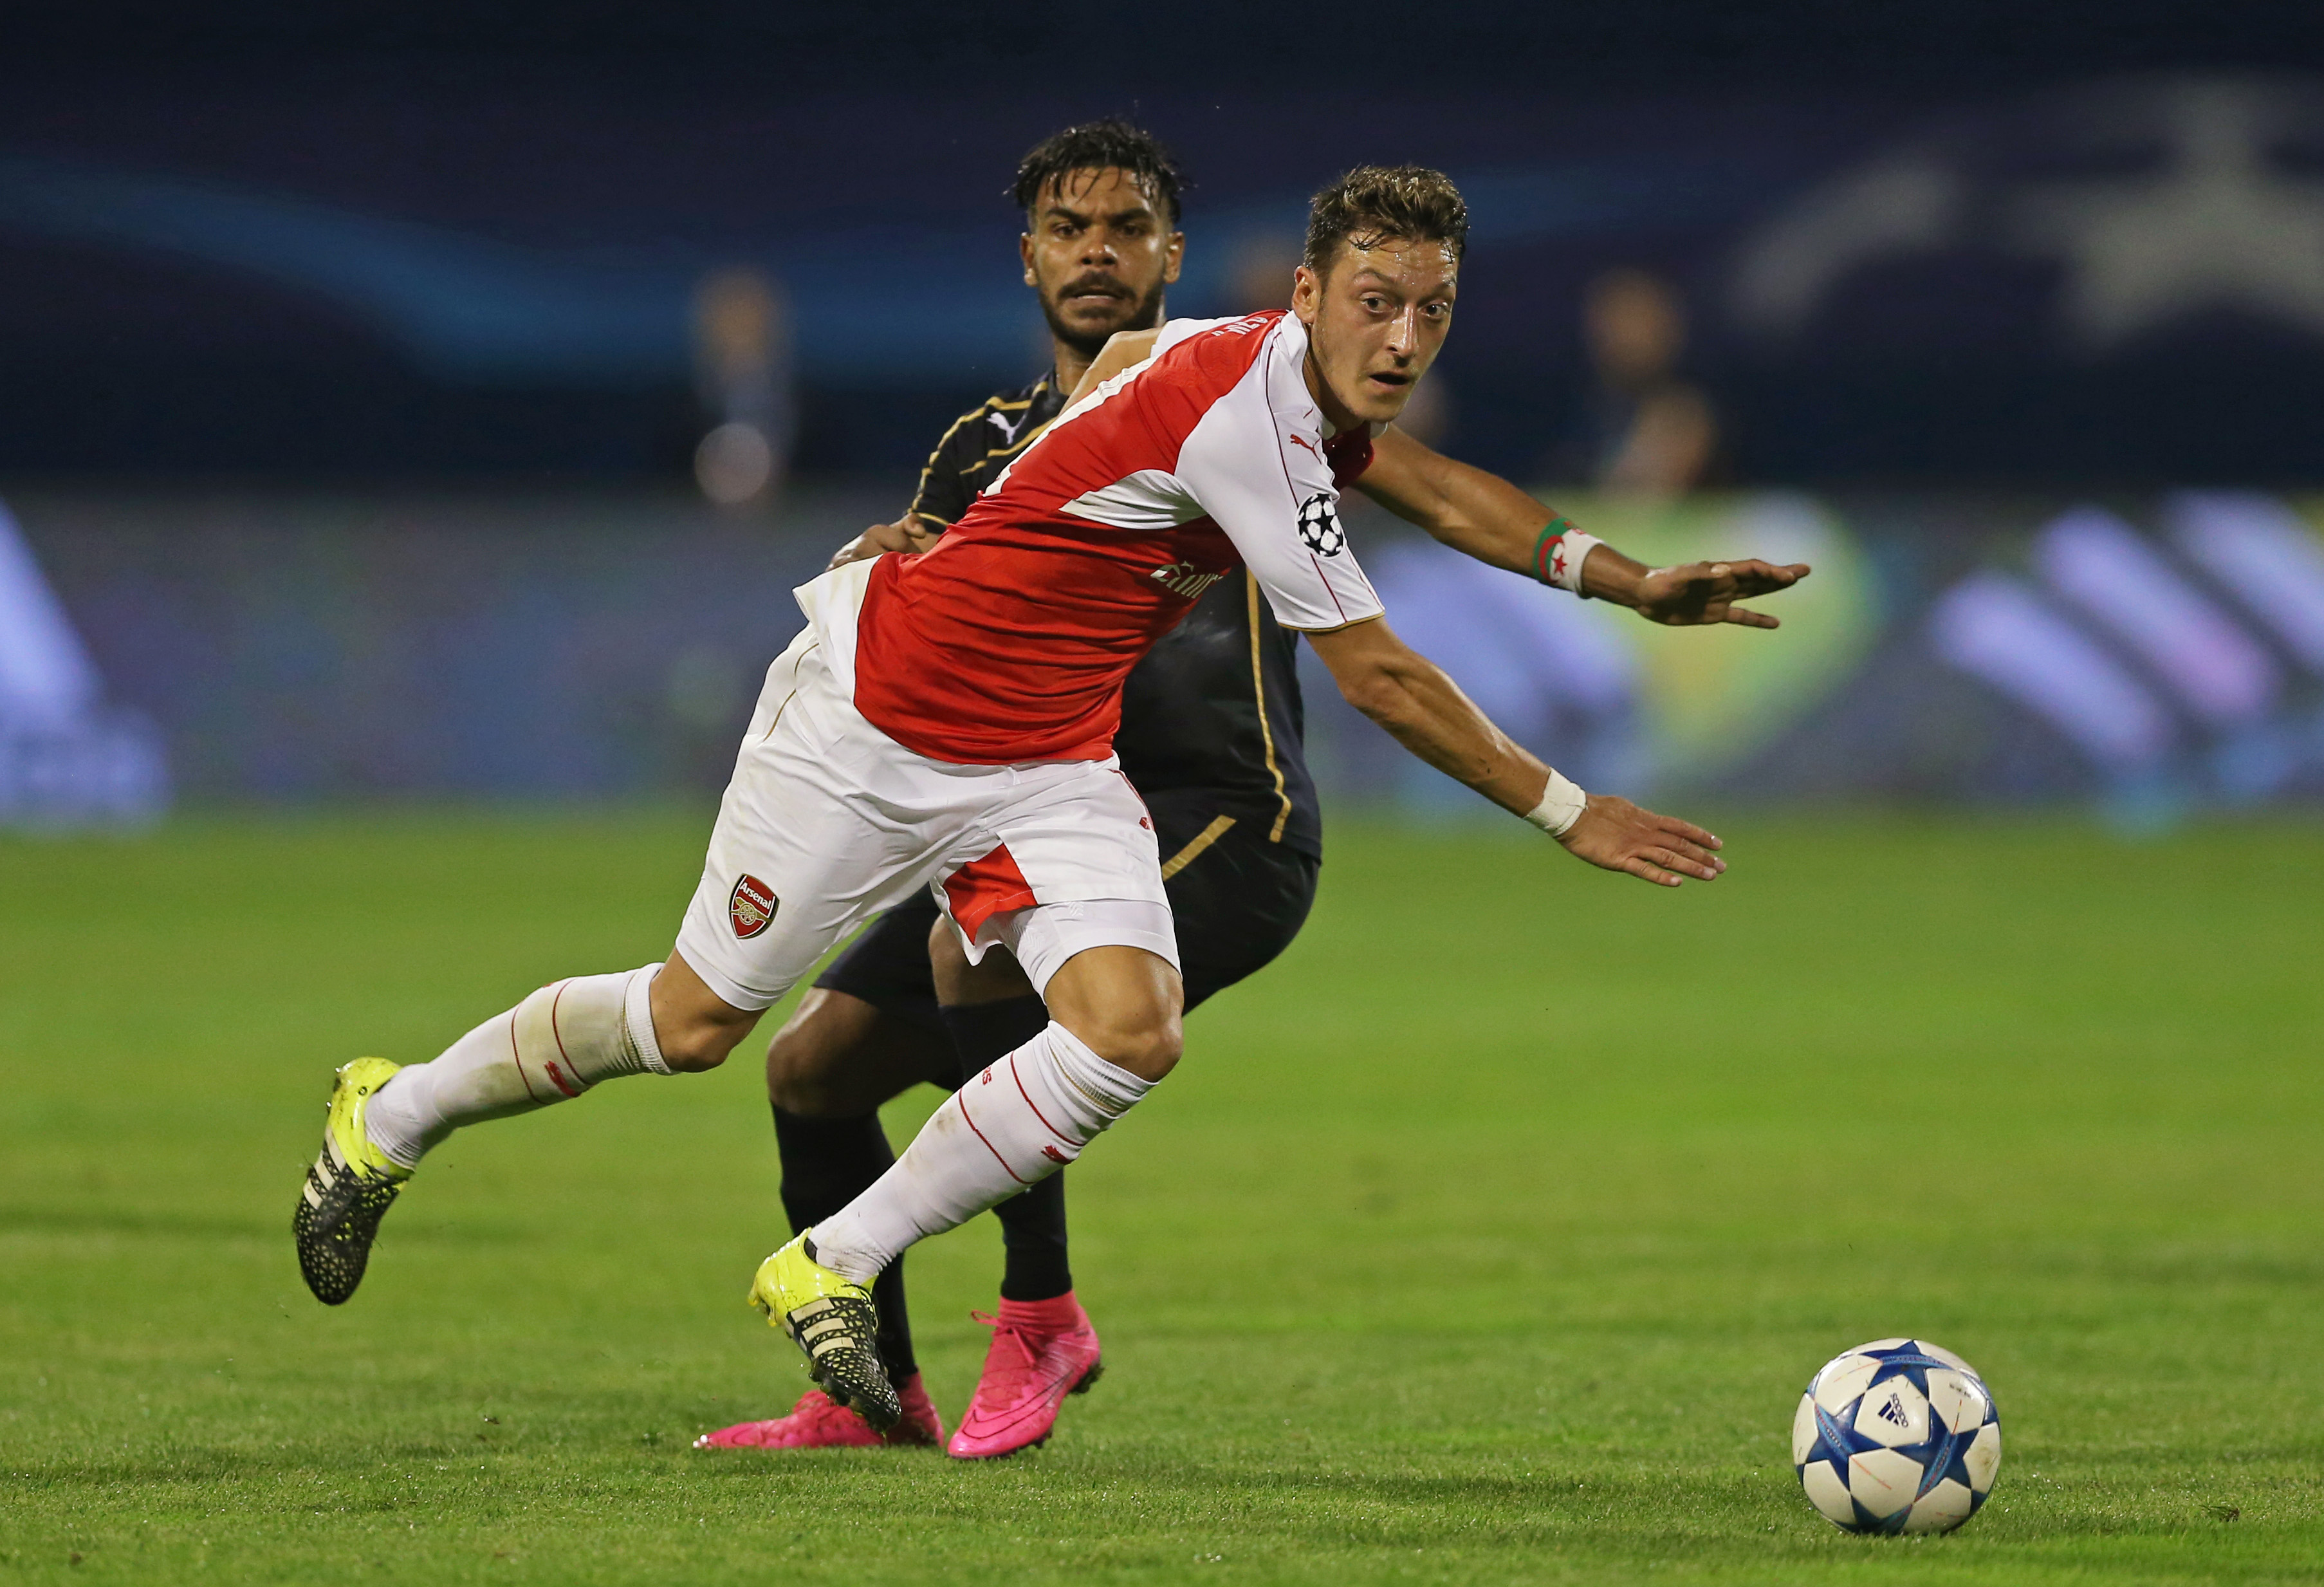 Football - Dinamo Zagreb v Arsenal - UEFA Champions League Group Stage - Group F - Maksimir Stadium, Zagreb, Croatia - 16/9/15nArsenal's Mesut Ozil in action with Zagreb's El Arabi Hilal SoudaninAction Images via Reuters / Matthew ChildsnLivepicnEDITORIAL USE ONLY.